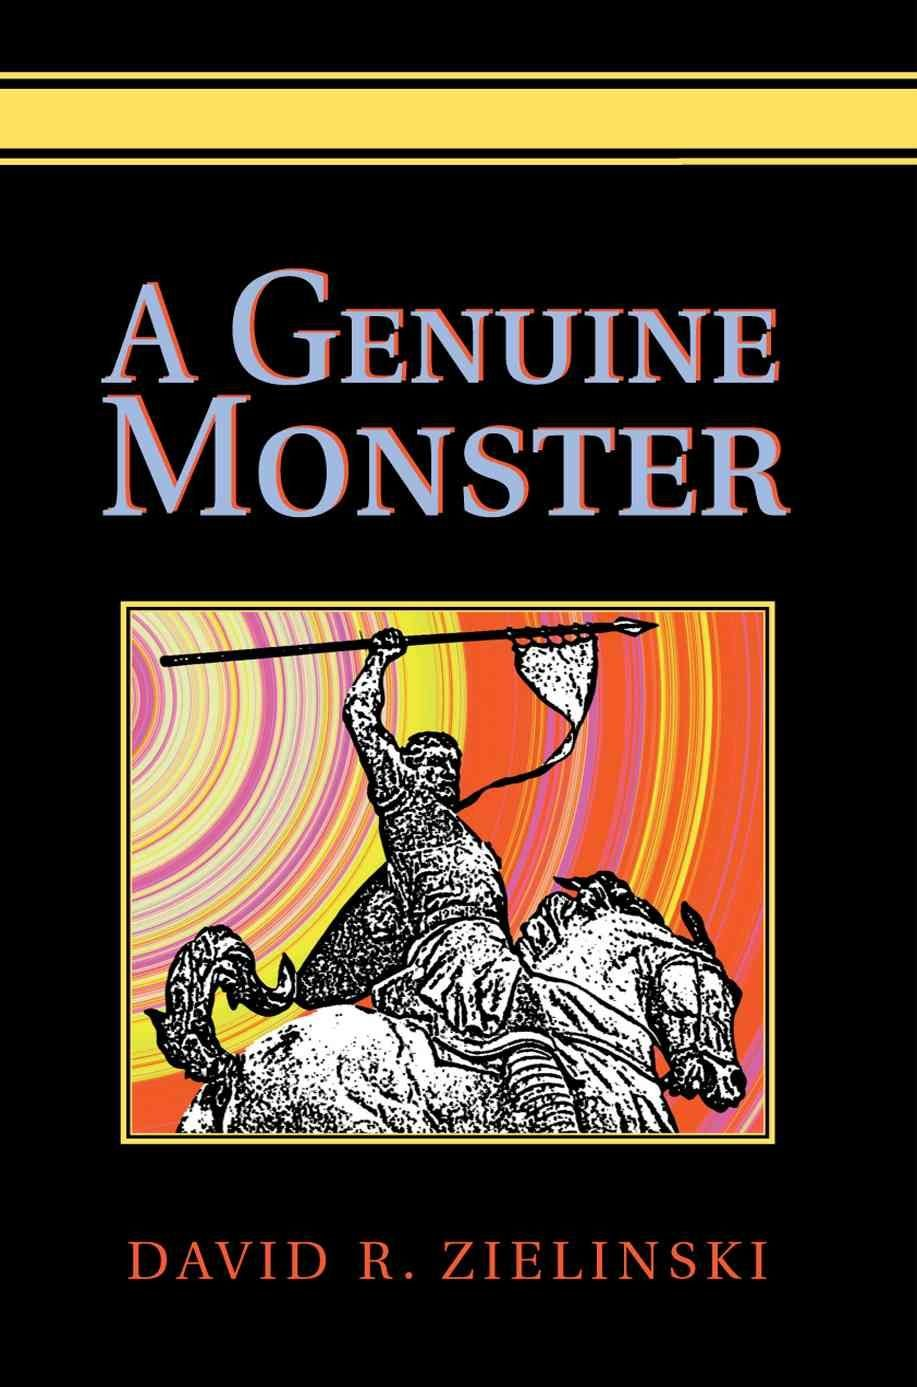 A Genuine Monster - David R Zielinski